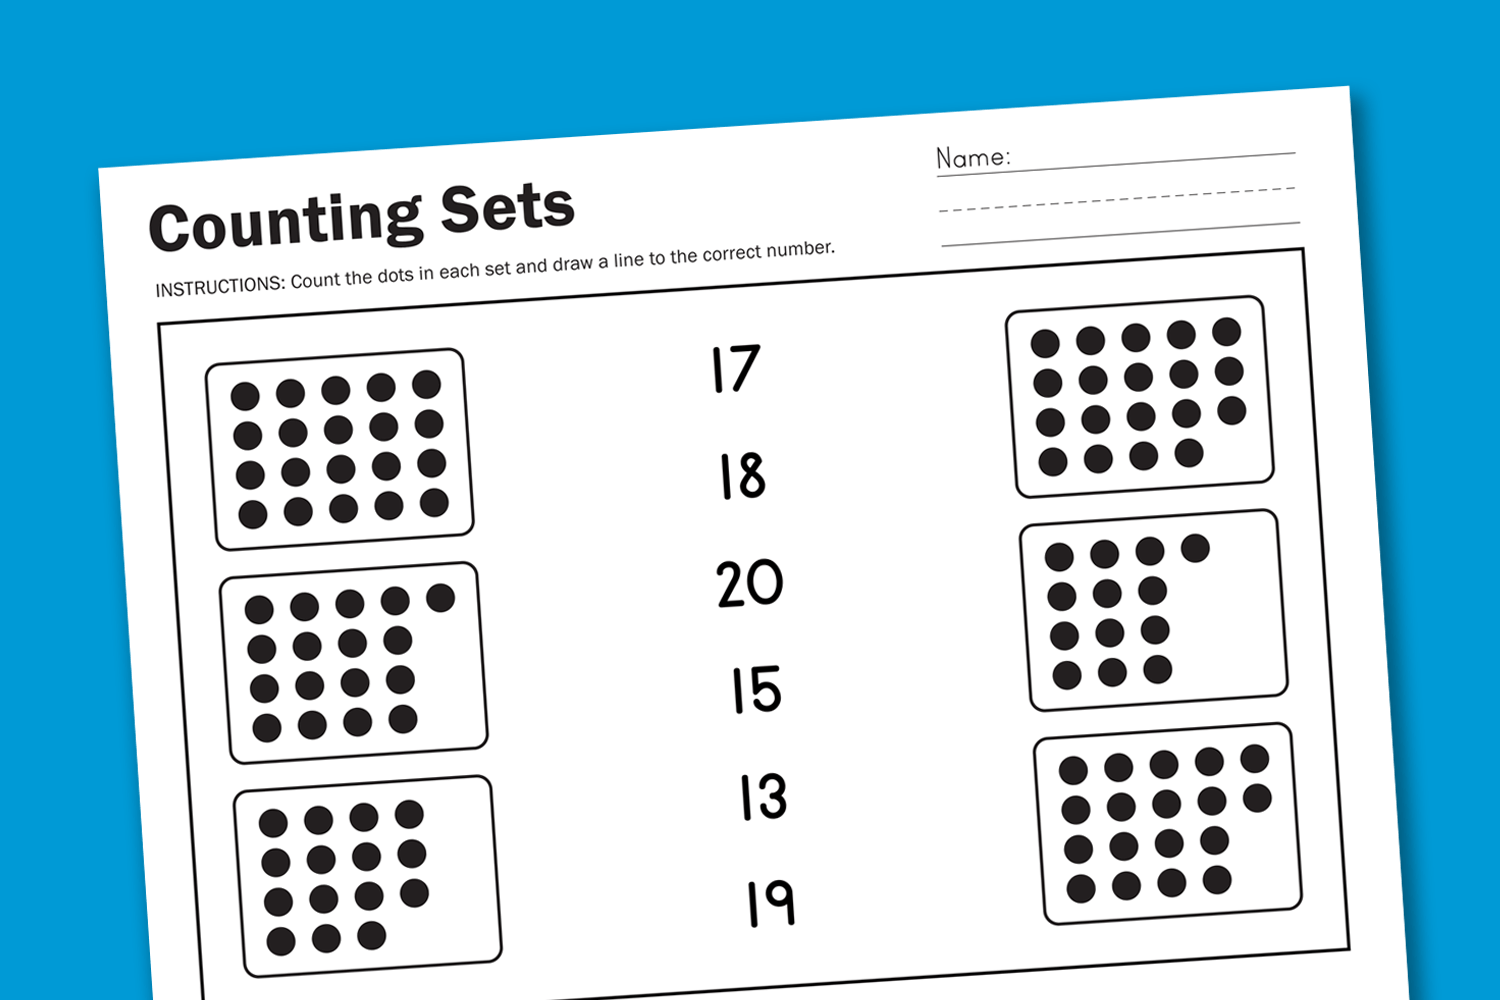 Worksheet Wednesday Counting Sets